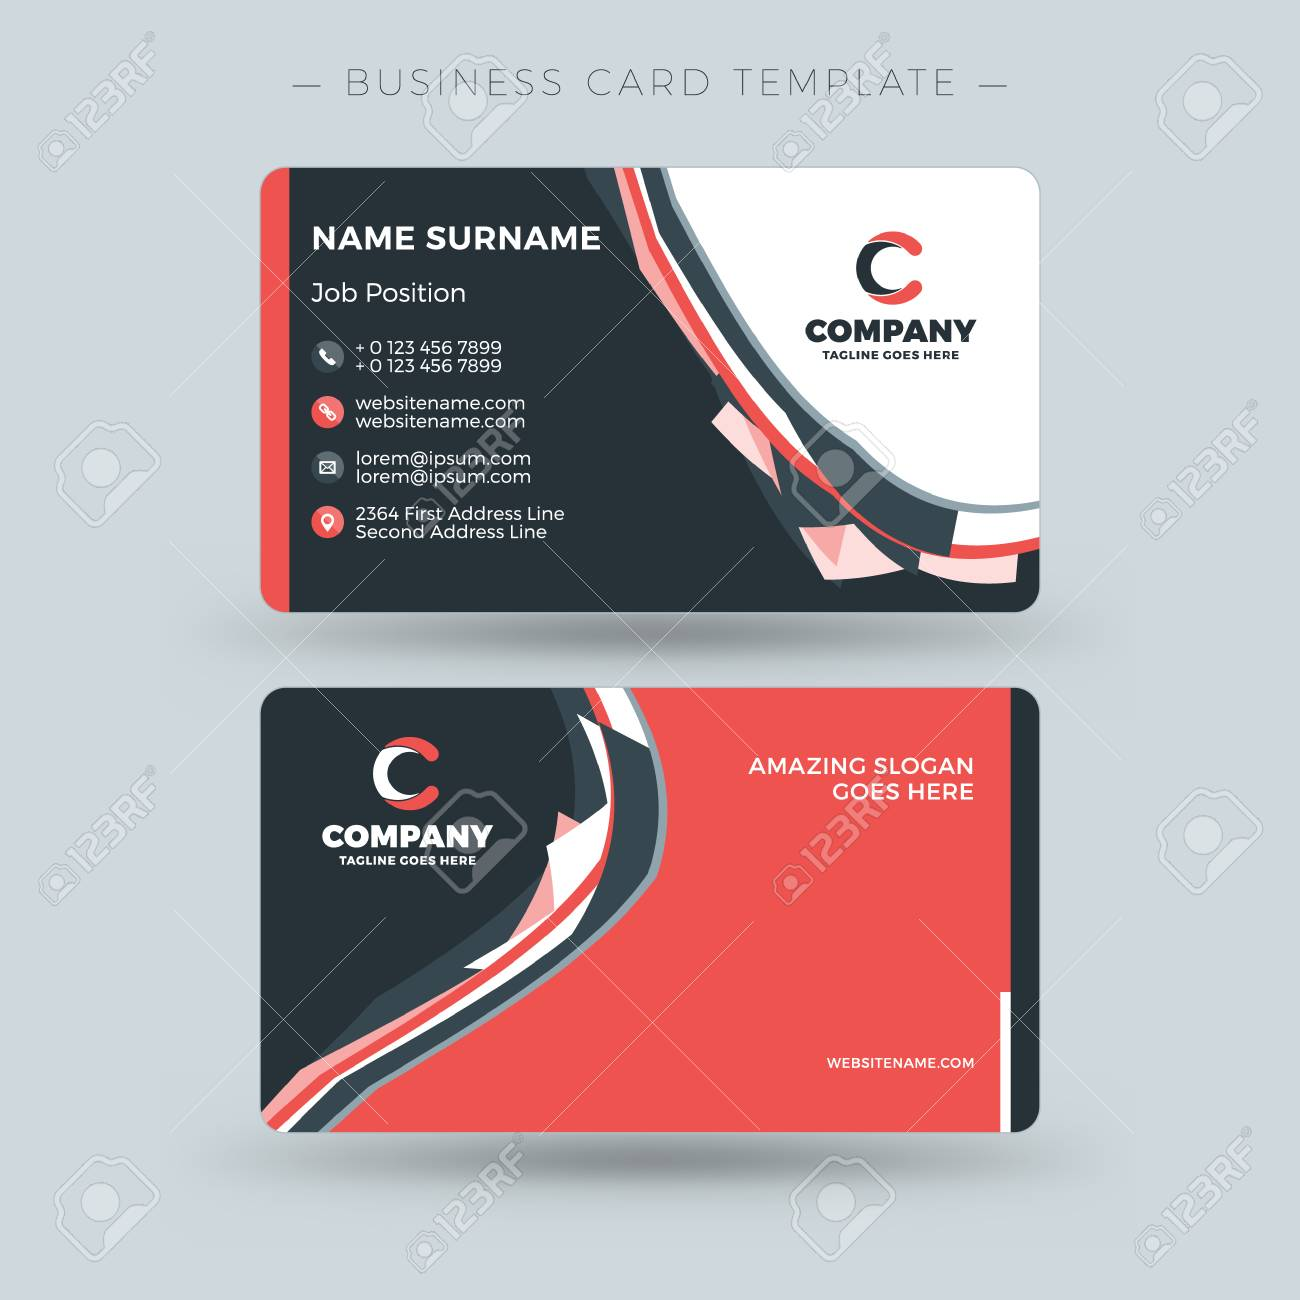 Double sided business card template with abstract red and black double sided business card template with abstract red and black waves background vector illustration fbccfo Choice Image